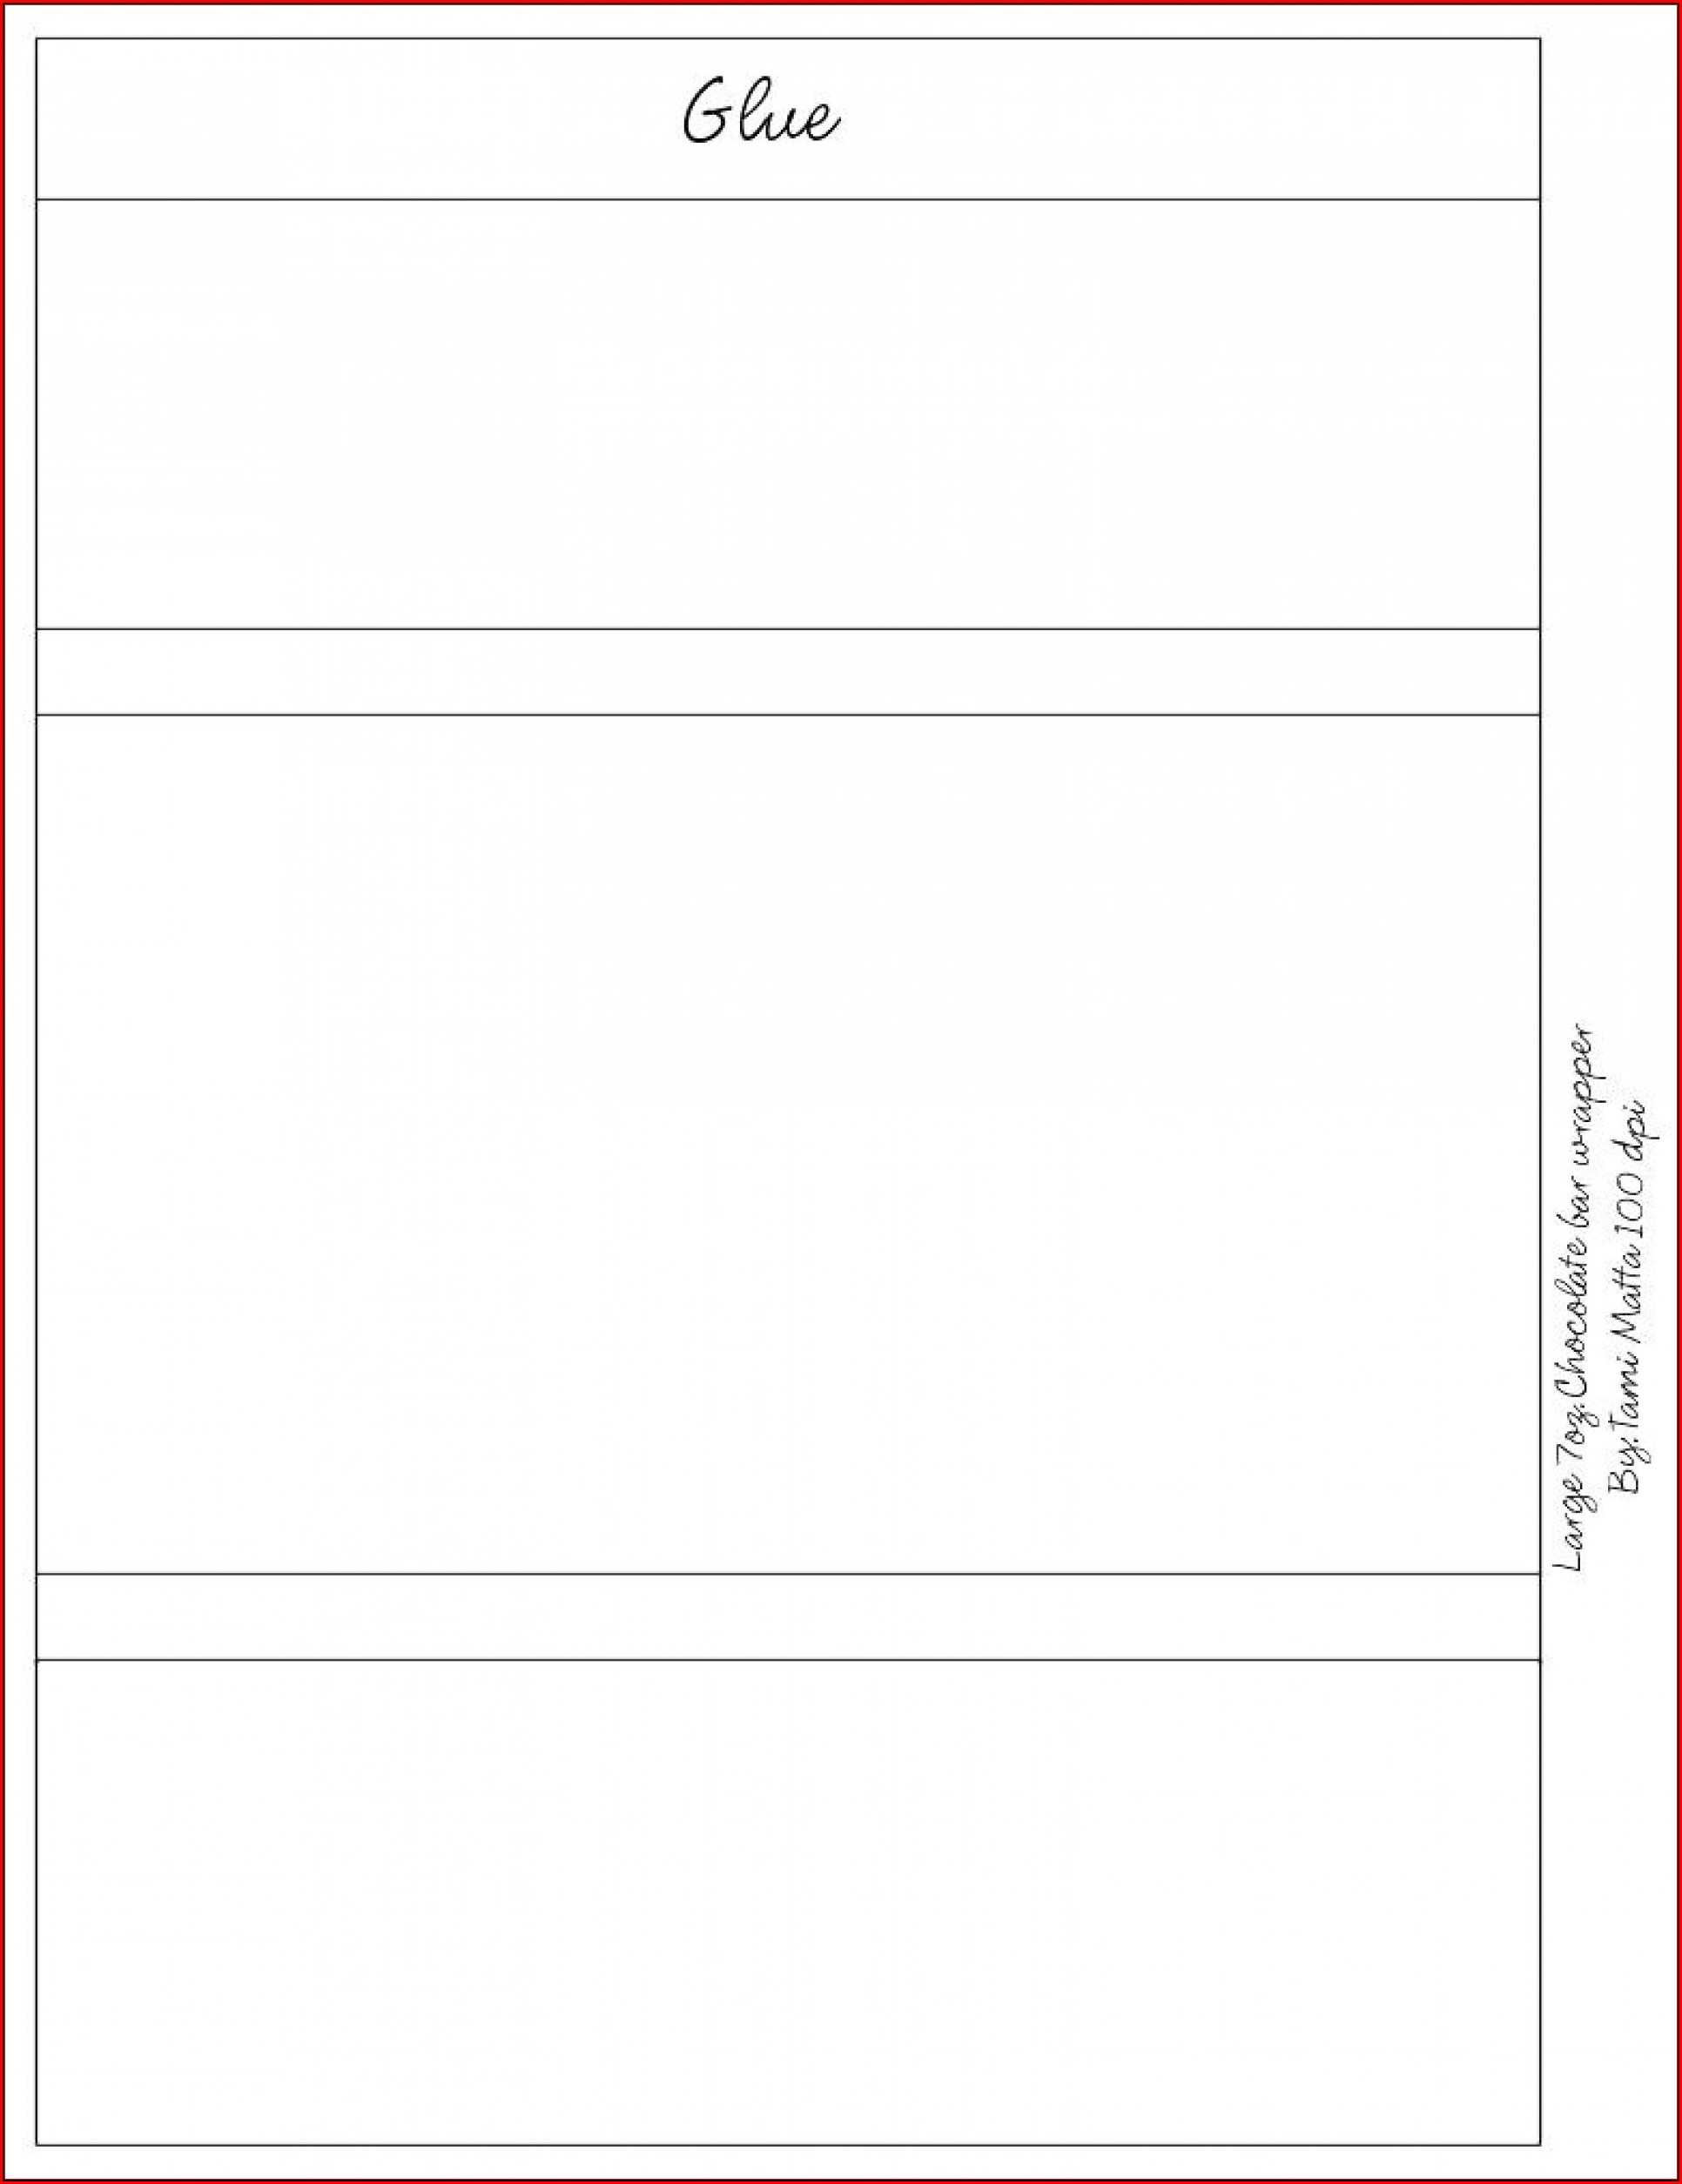 Free Blank Candy Bar Wrapper Template For Word – Template 1 In Candy Bar Wrapper Template Microsoft Word